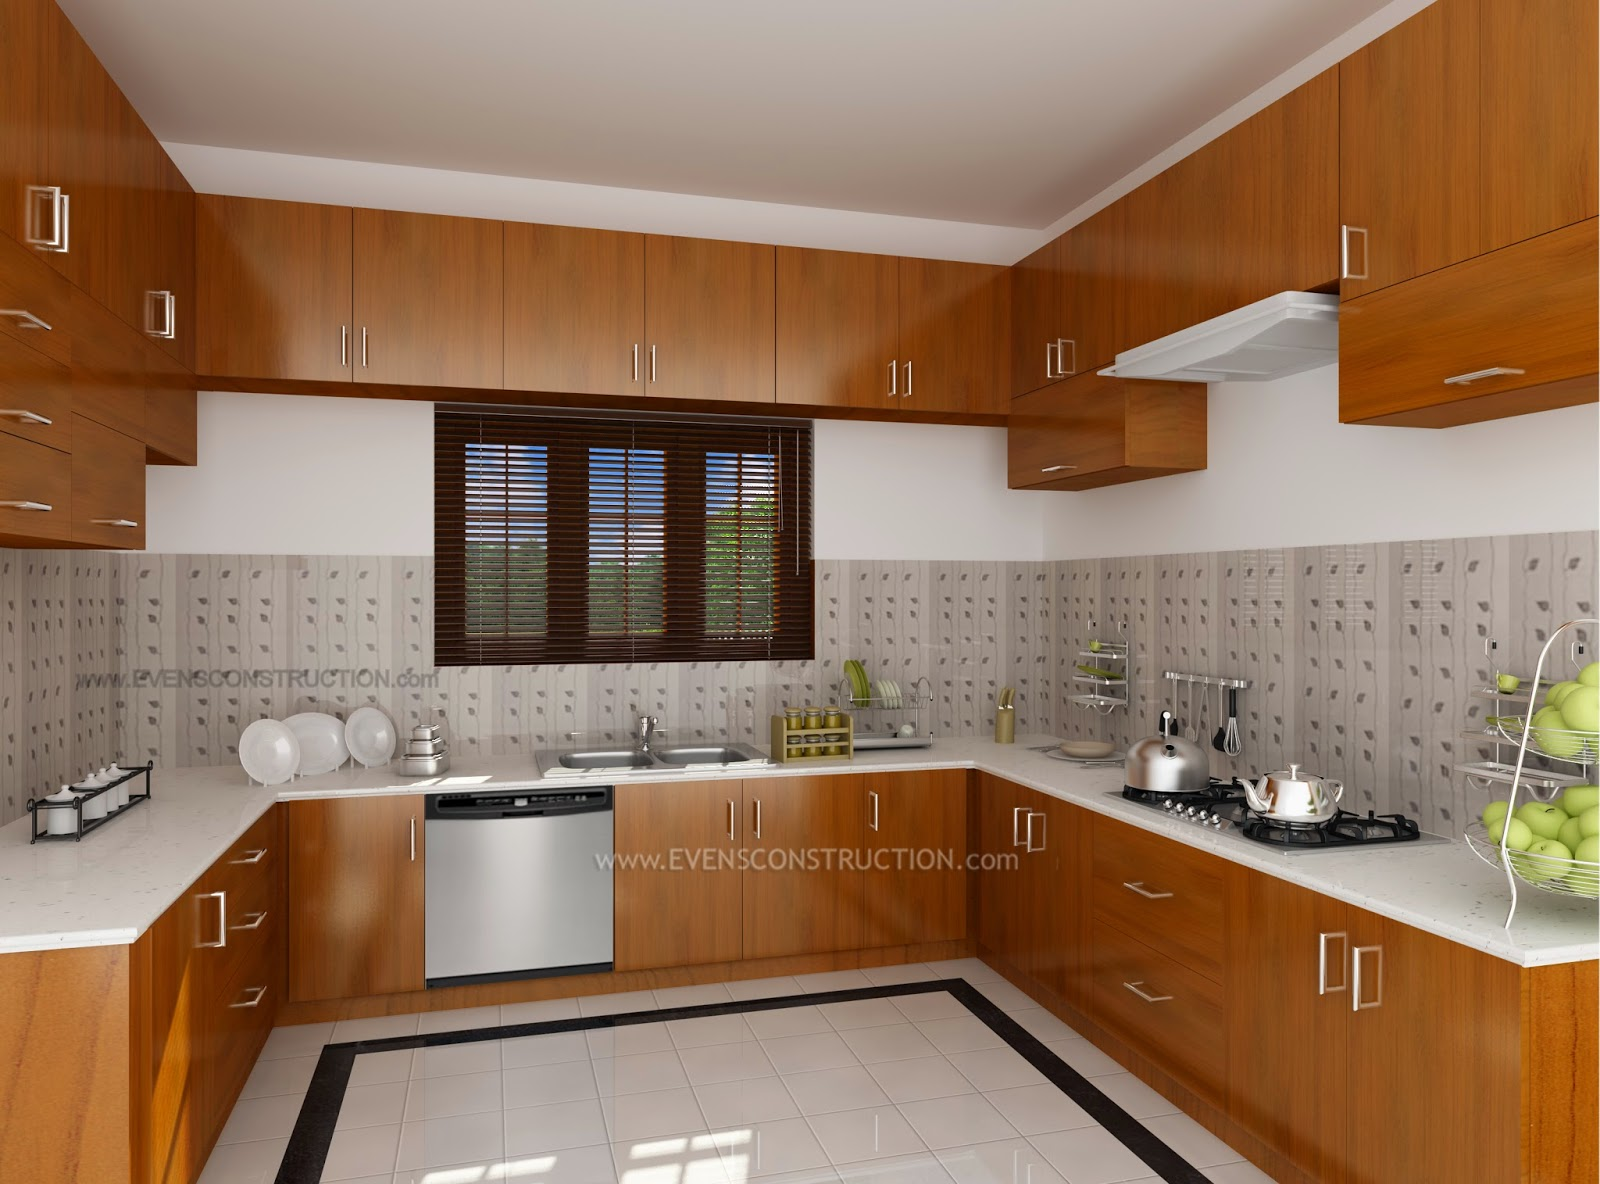 kerala kitchen interior design home - House Designs Kitchen